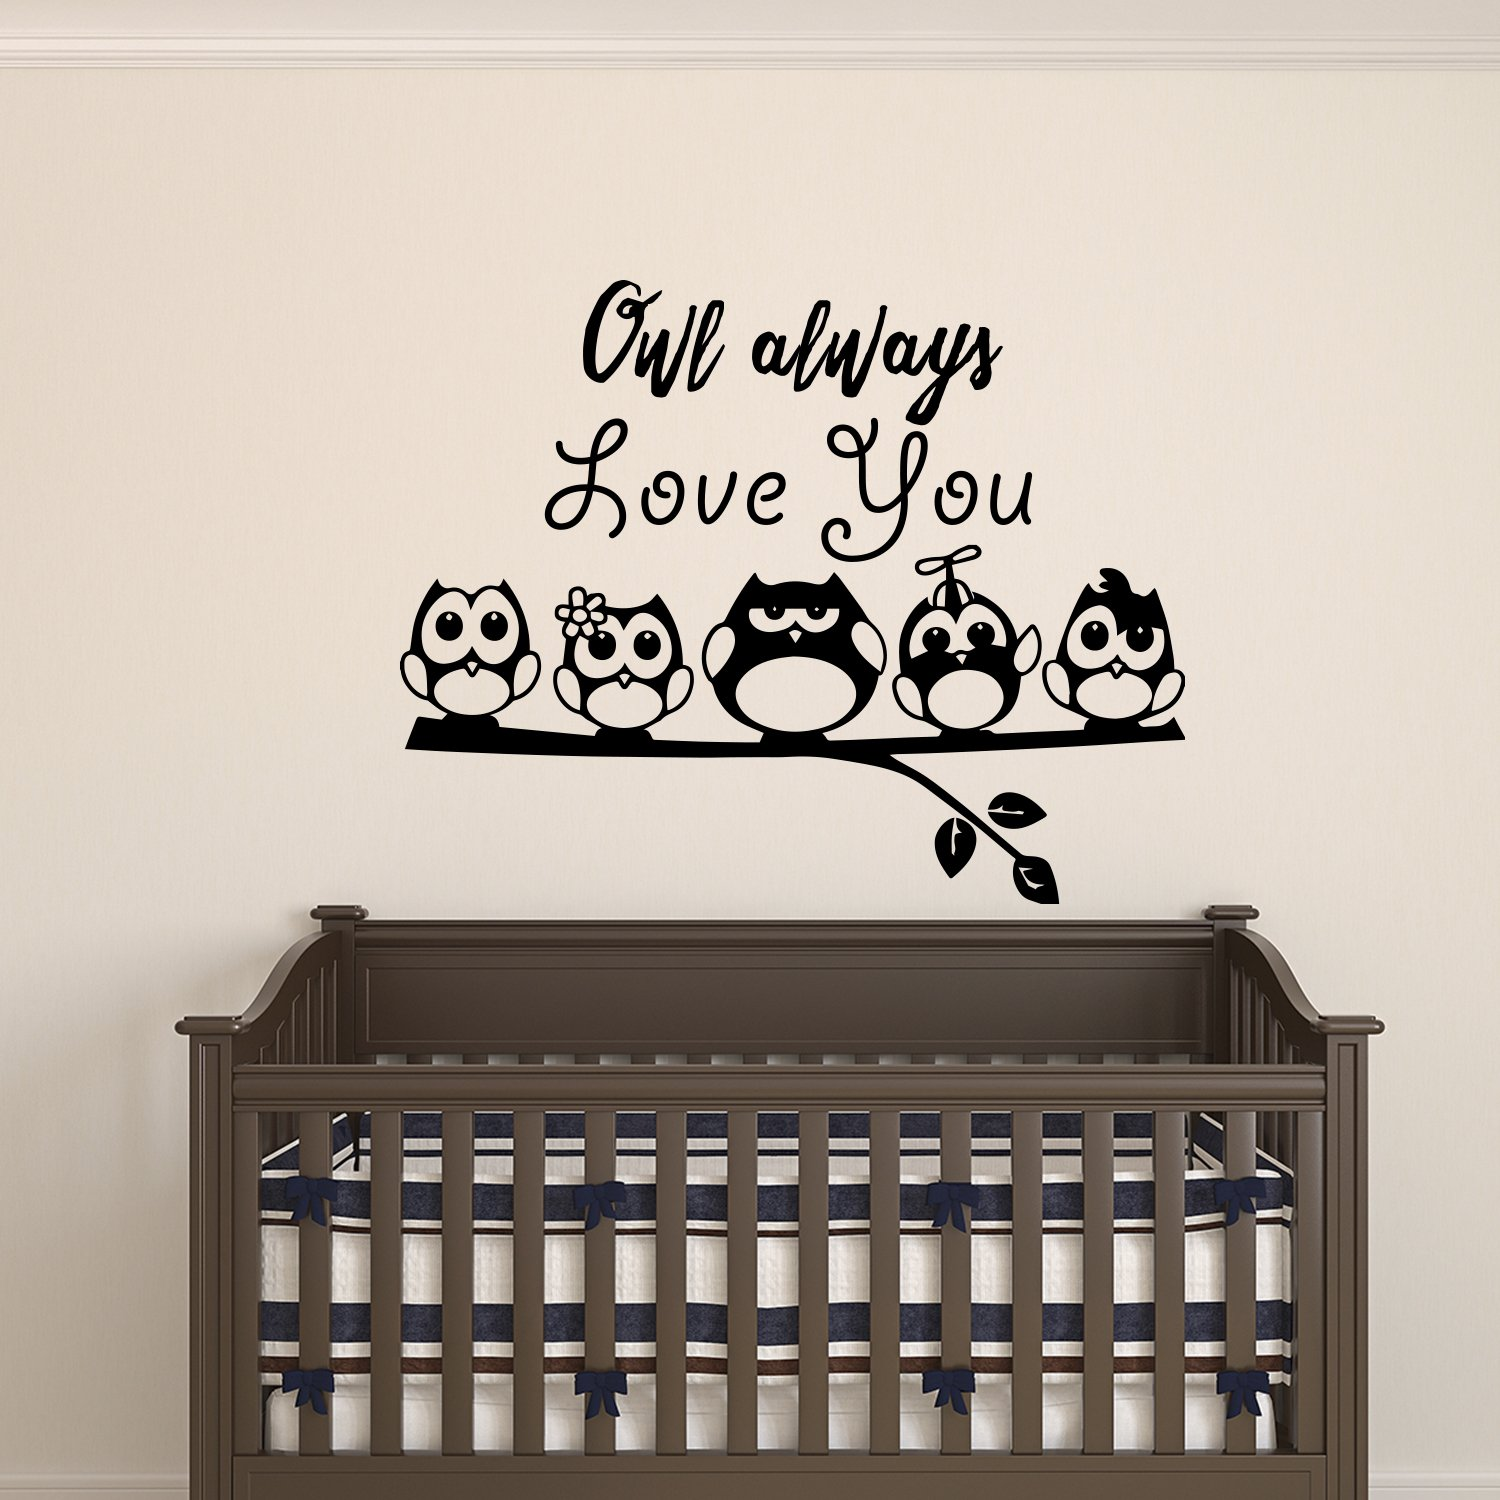 OWL Wall Decal Sticker 23 Wide 40 Tall in White or Black